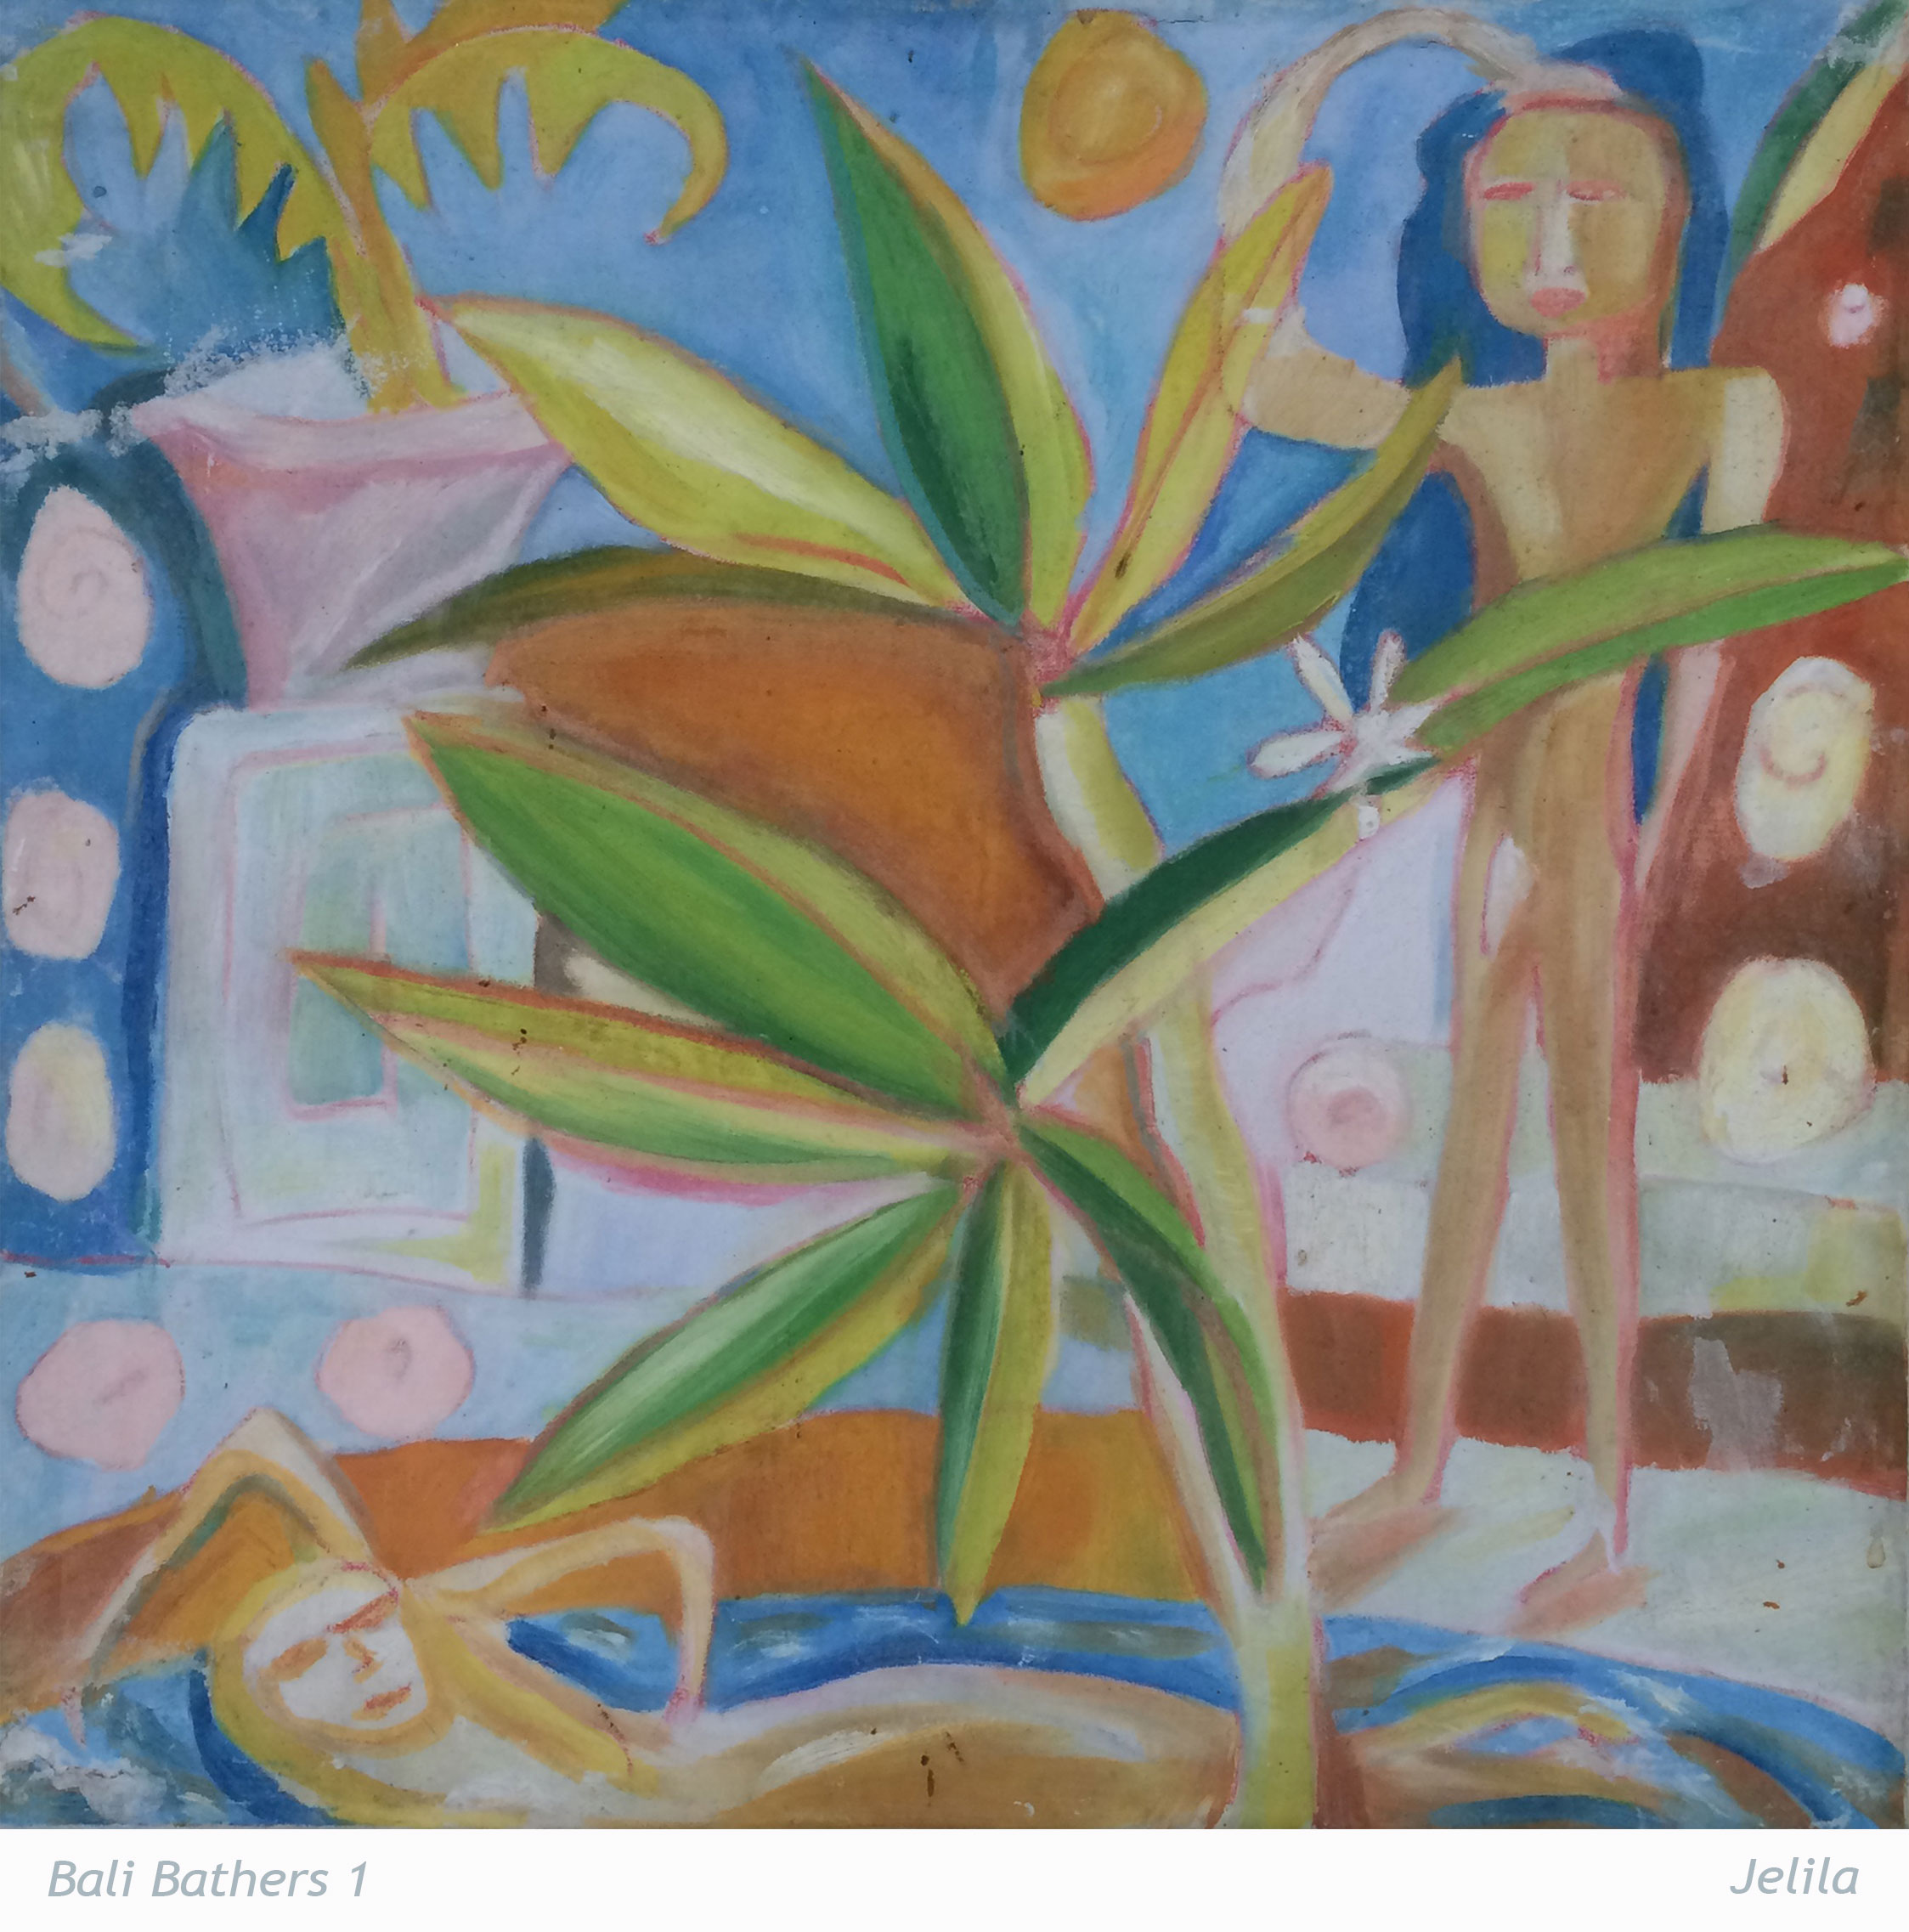 935-Bali-Bathers-1-art-by-Jelila--artist